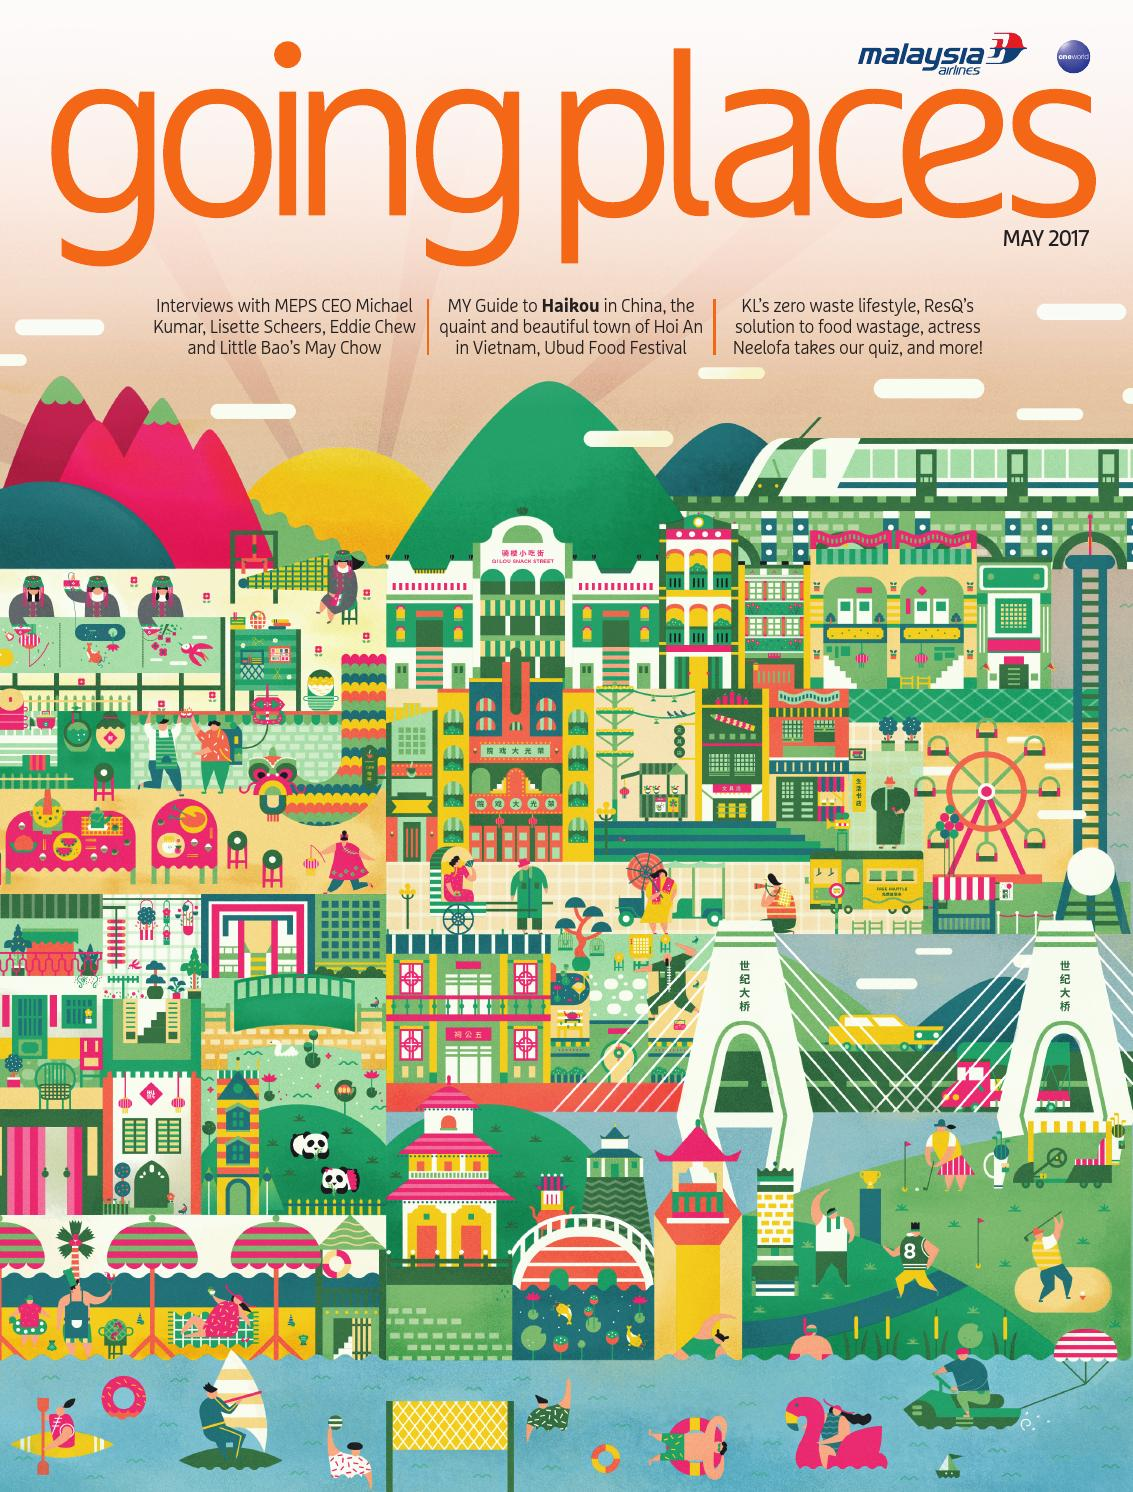 Going Places May 2017 by Spafax Malaysia - issuu